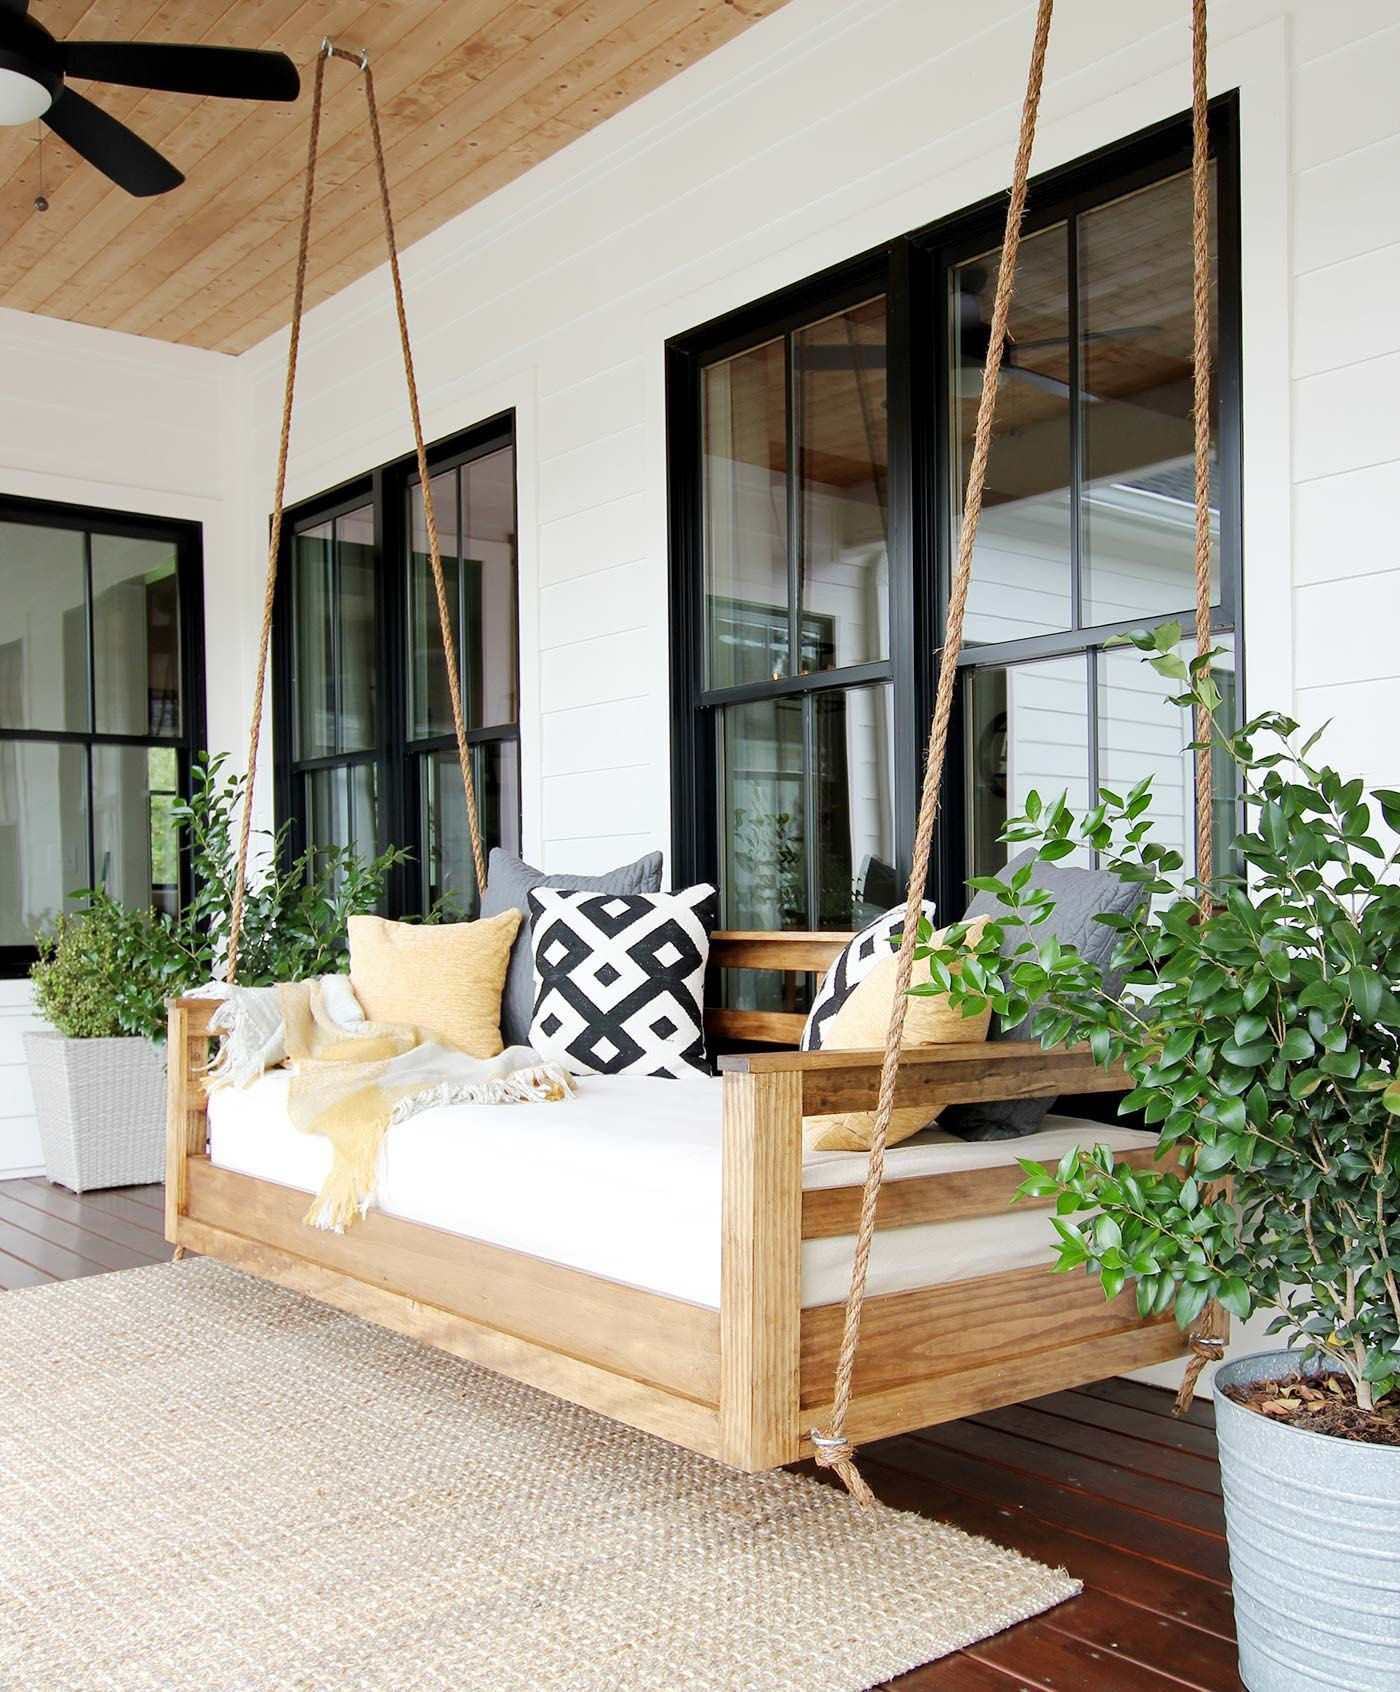 Free Diy Porch Swing Plans & Ideas To Chill In Your Front Intended For Patio Hanging Porch Swings (View 3 of 25)